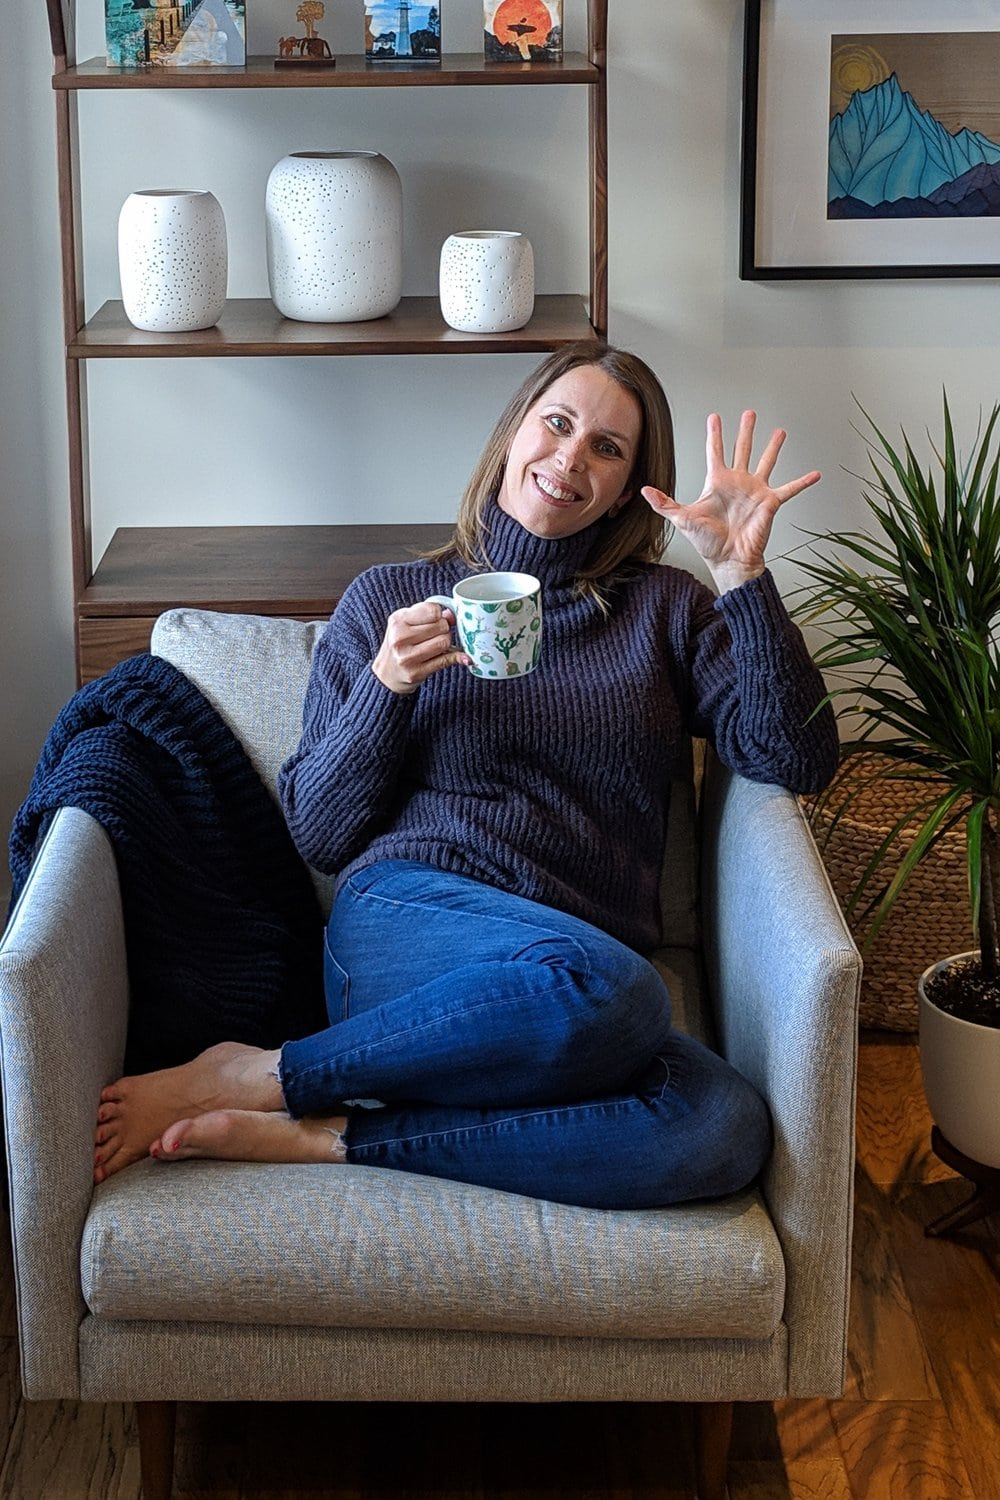 Vanessa from www.mapleandmango.com sitting in a chair and waving